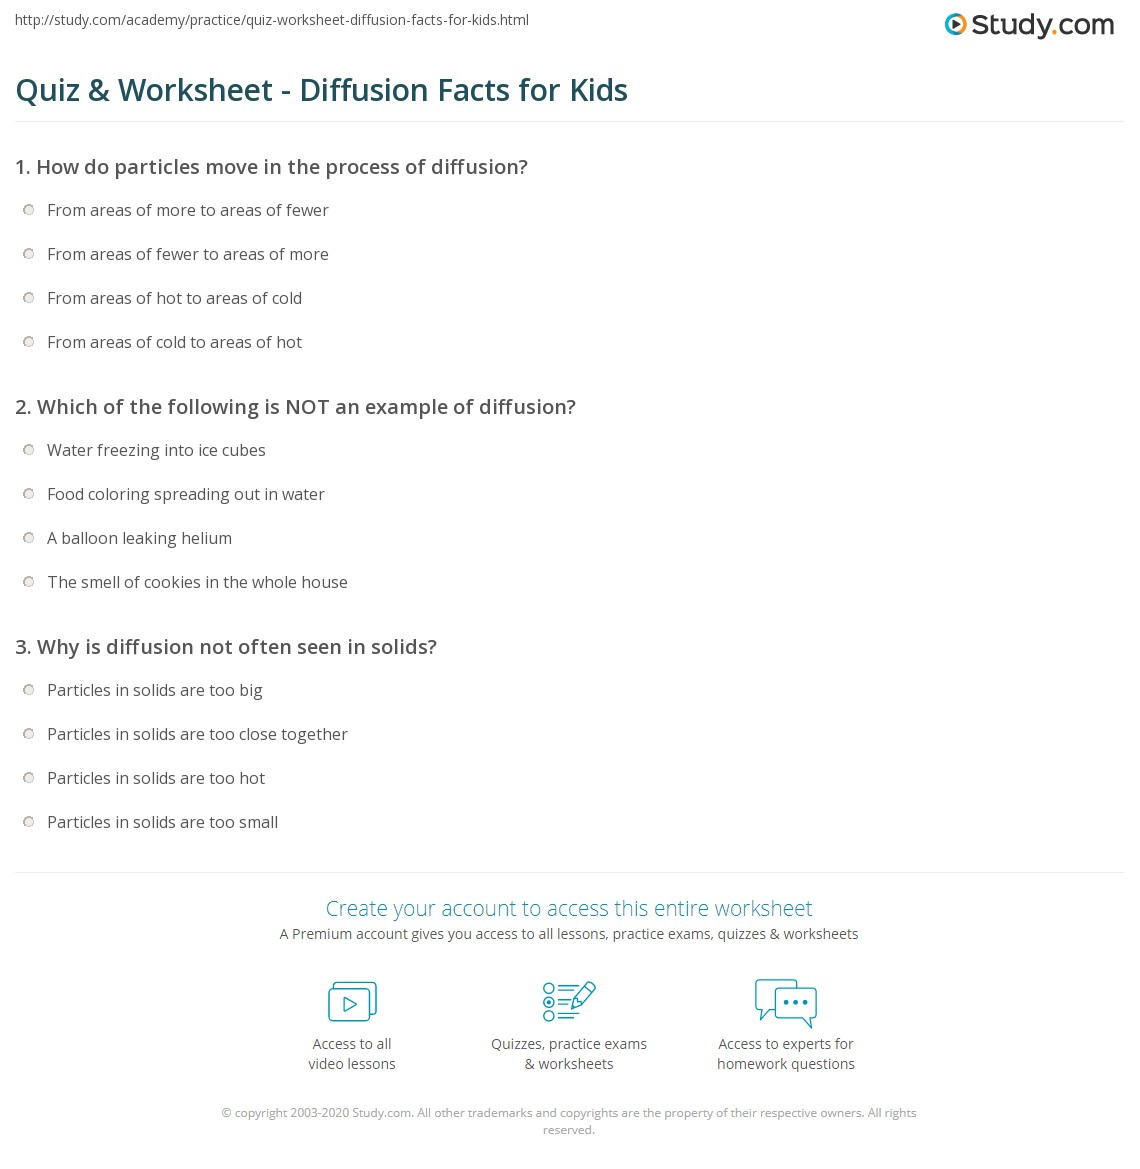 Quiz Worksheet Diffusion Facts For Kids Study Com